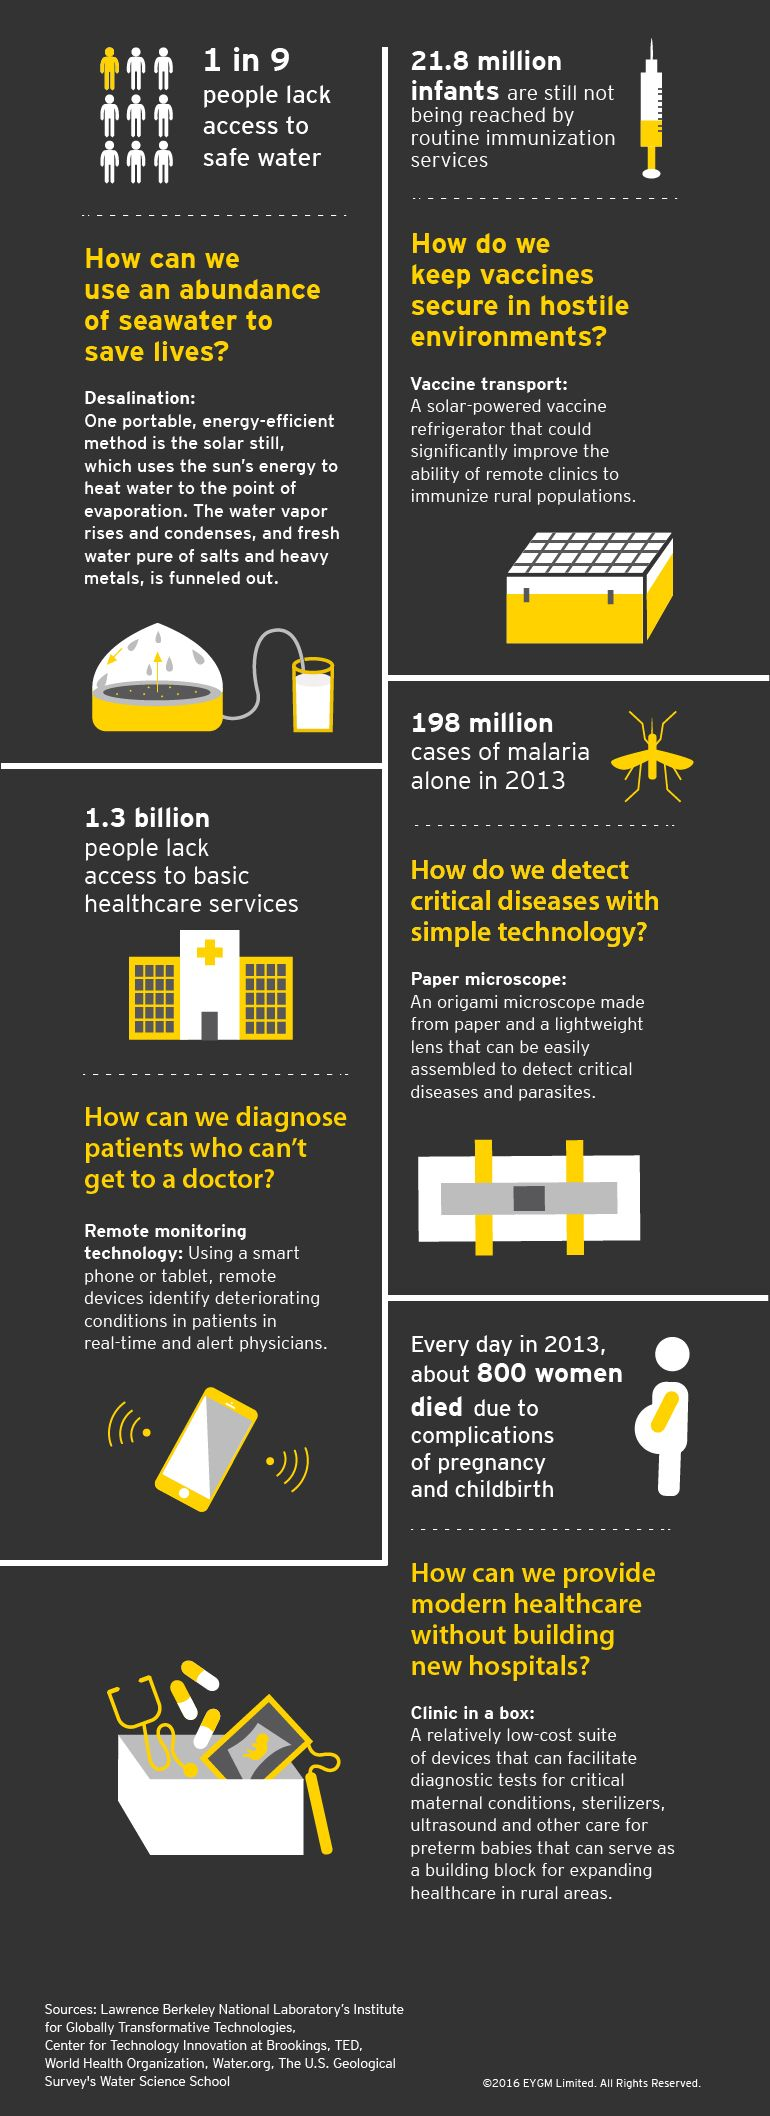 Five technologies that could help transform health in the developing world